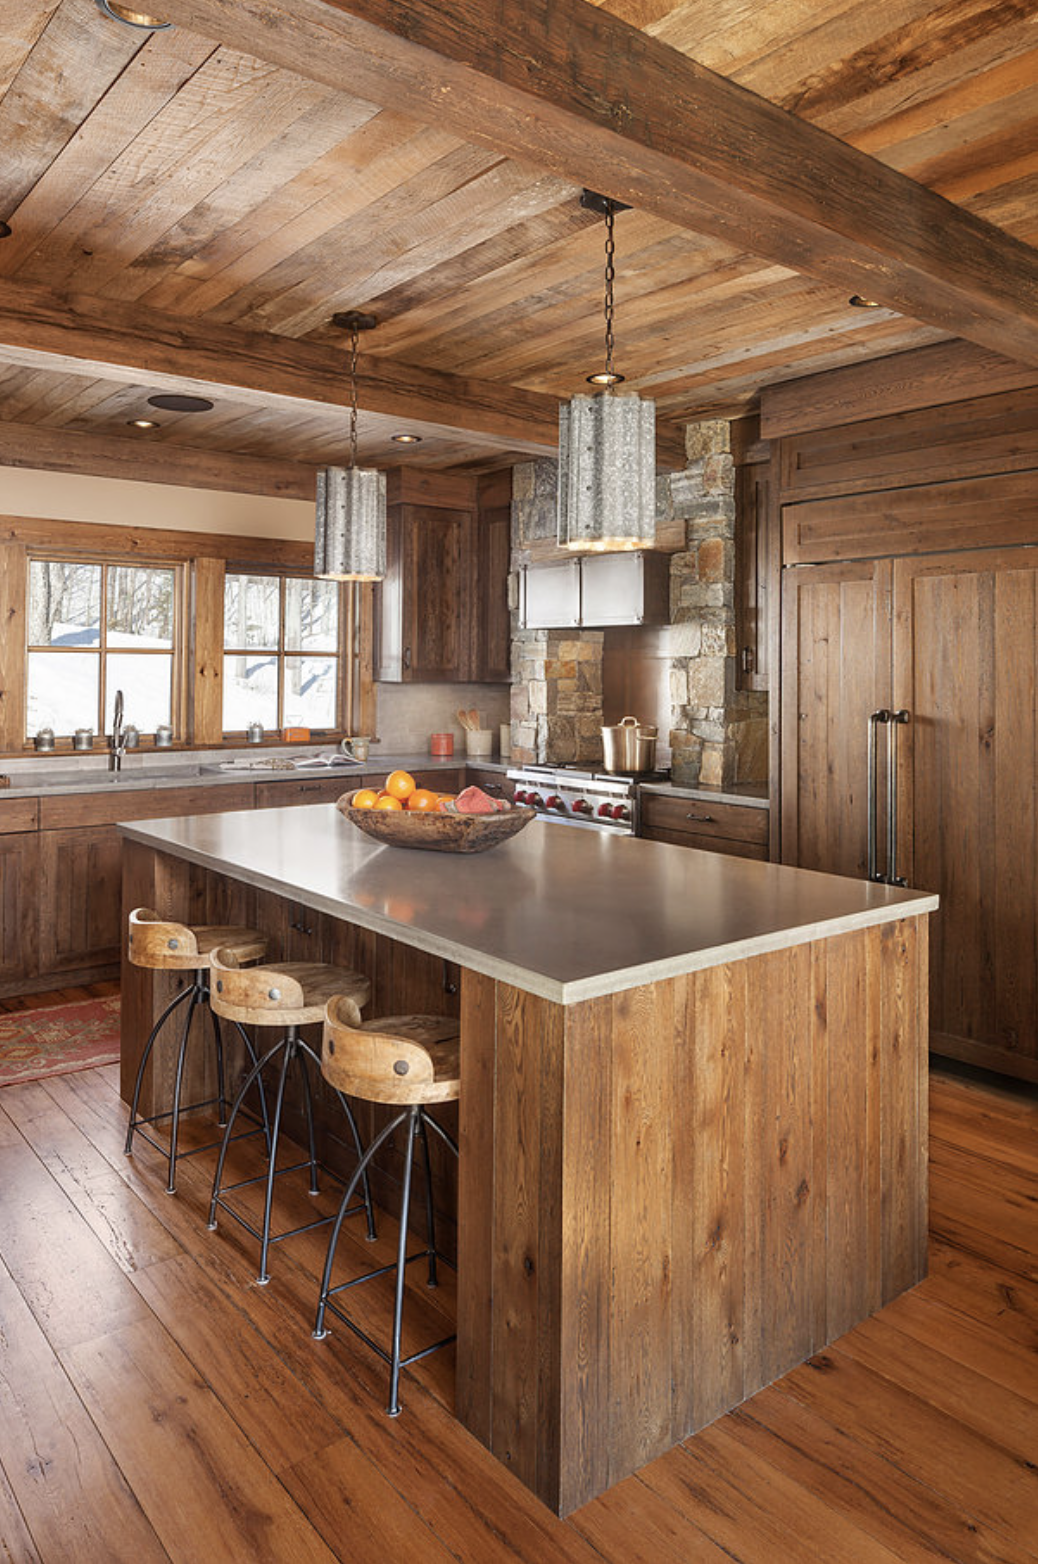 9 Of Our Favorite Rustic Kitchens With Exposed Wood Beams Boston Design Guide